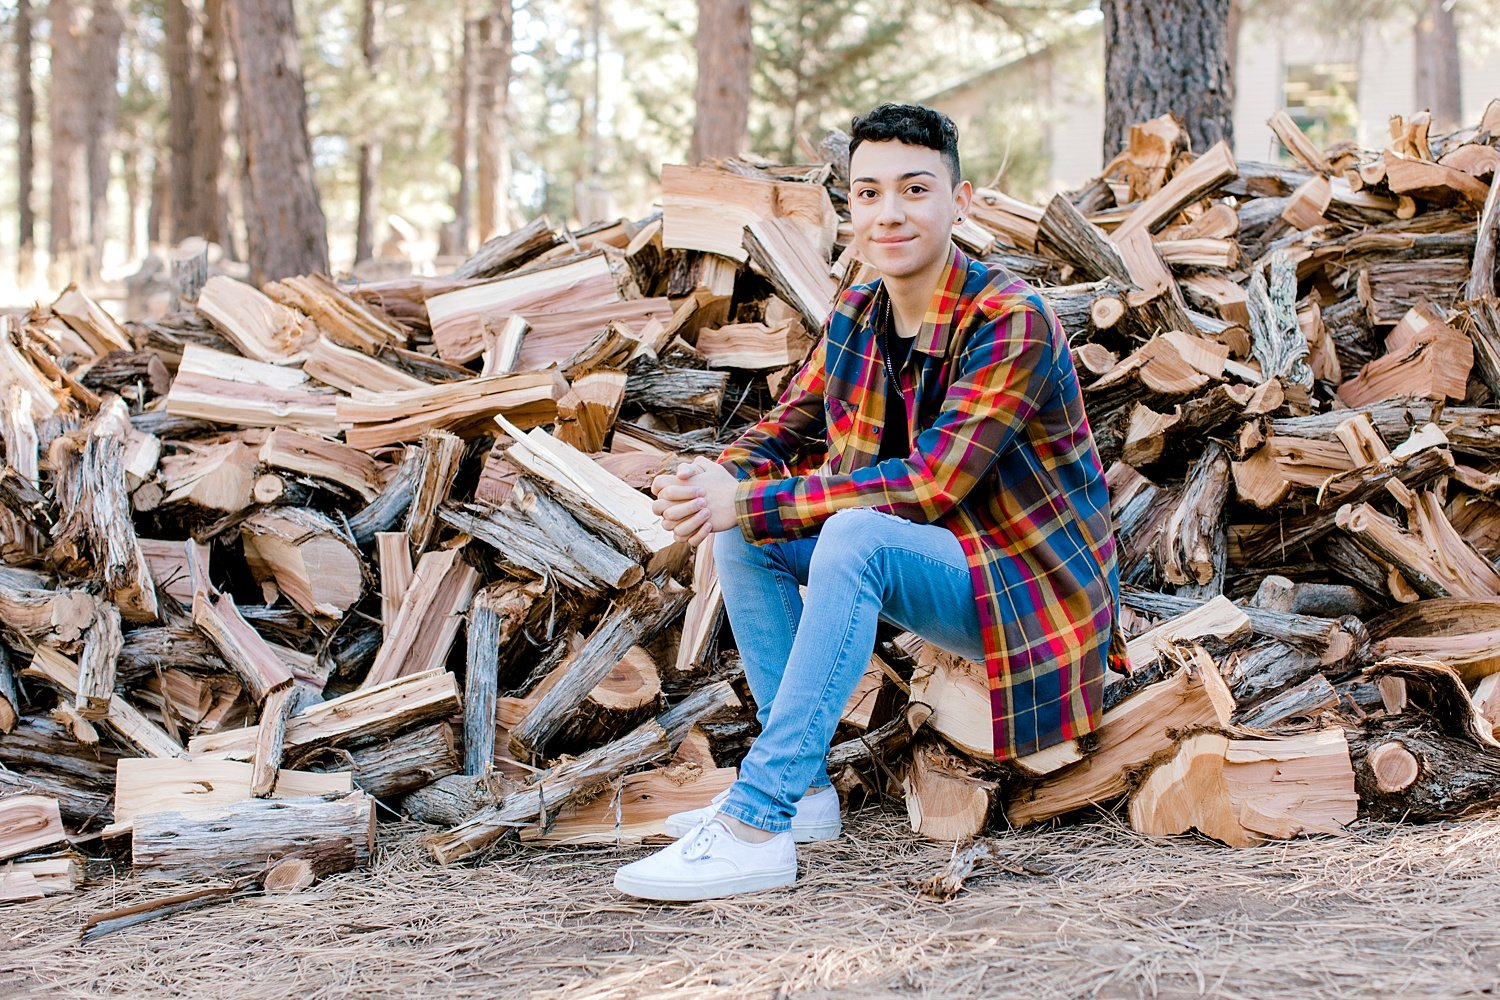 Guy in a flannel shirt sitting in a chopped wood pile in Flagstaff, Arizona